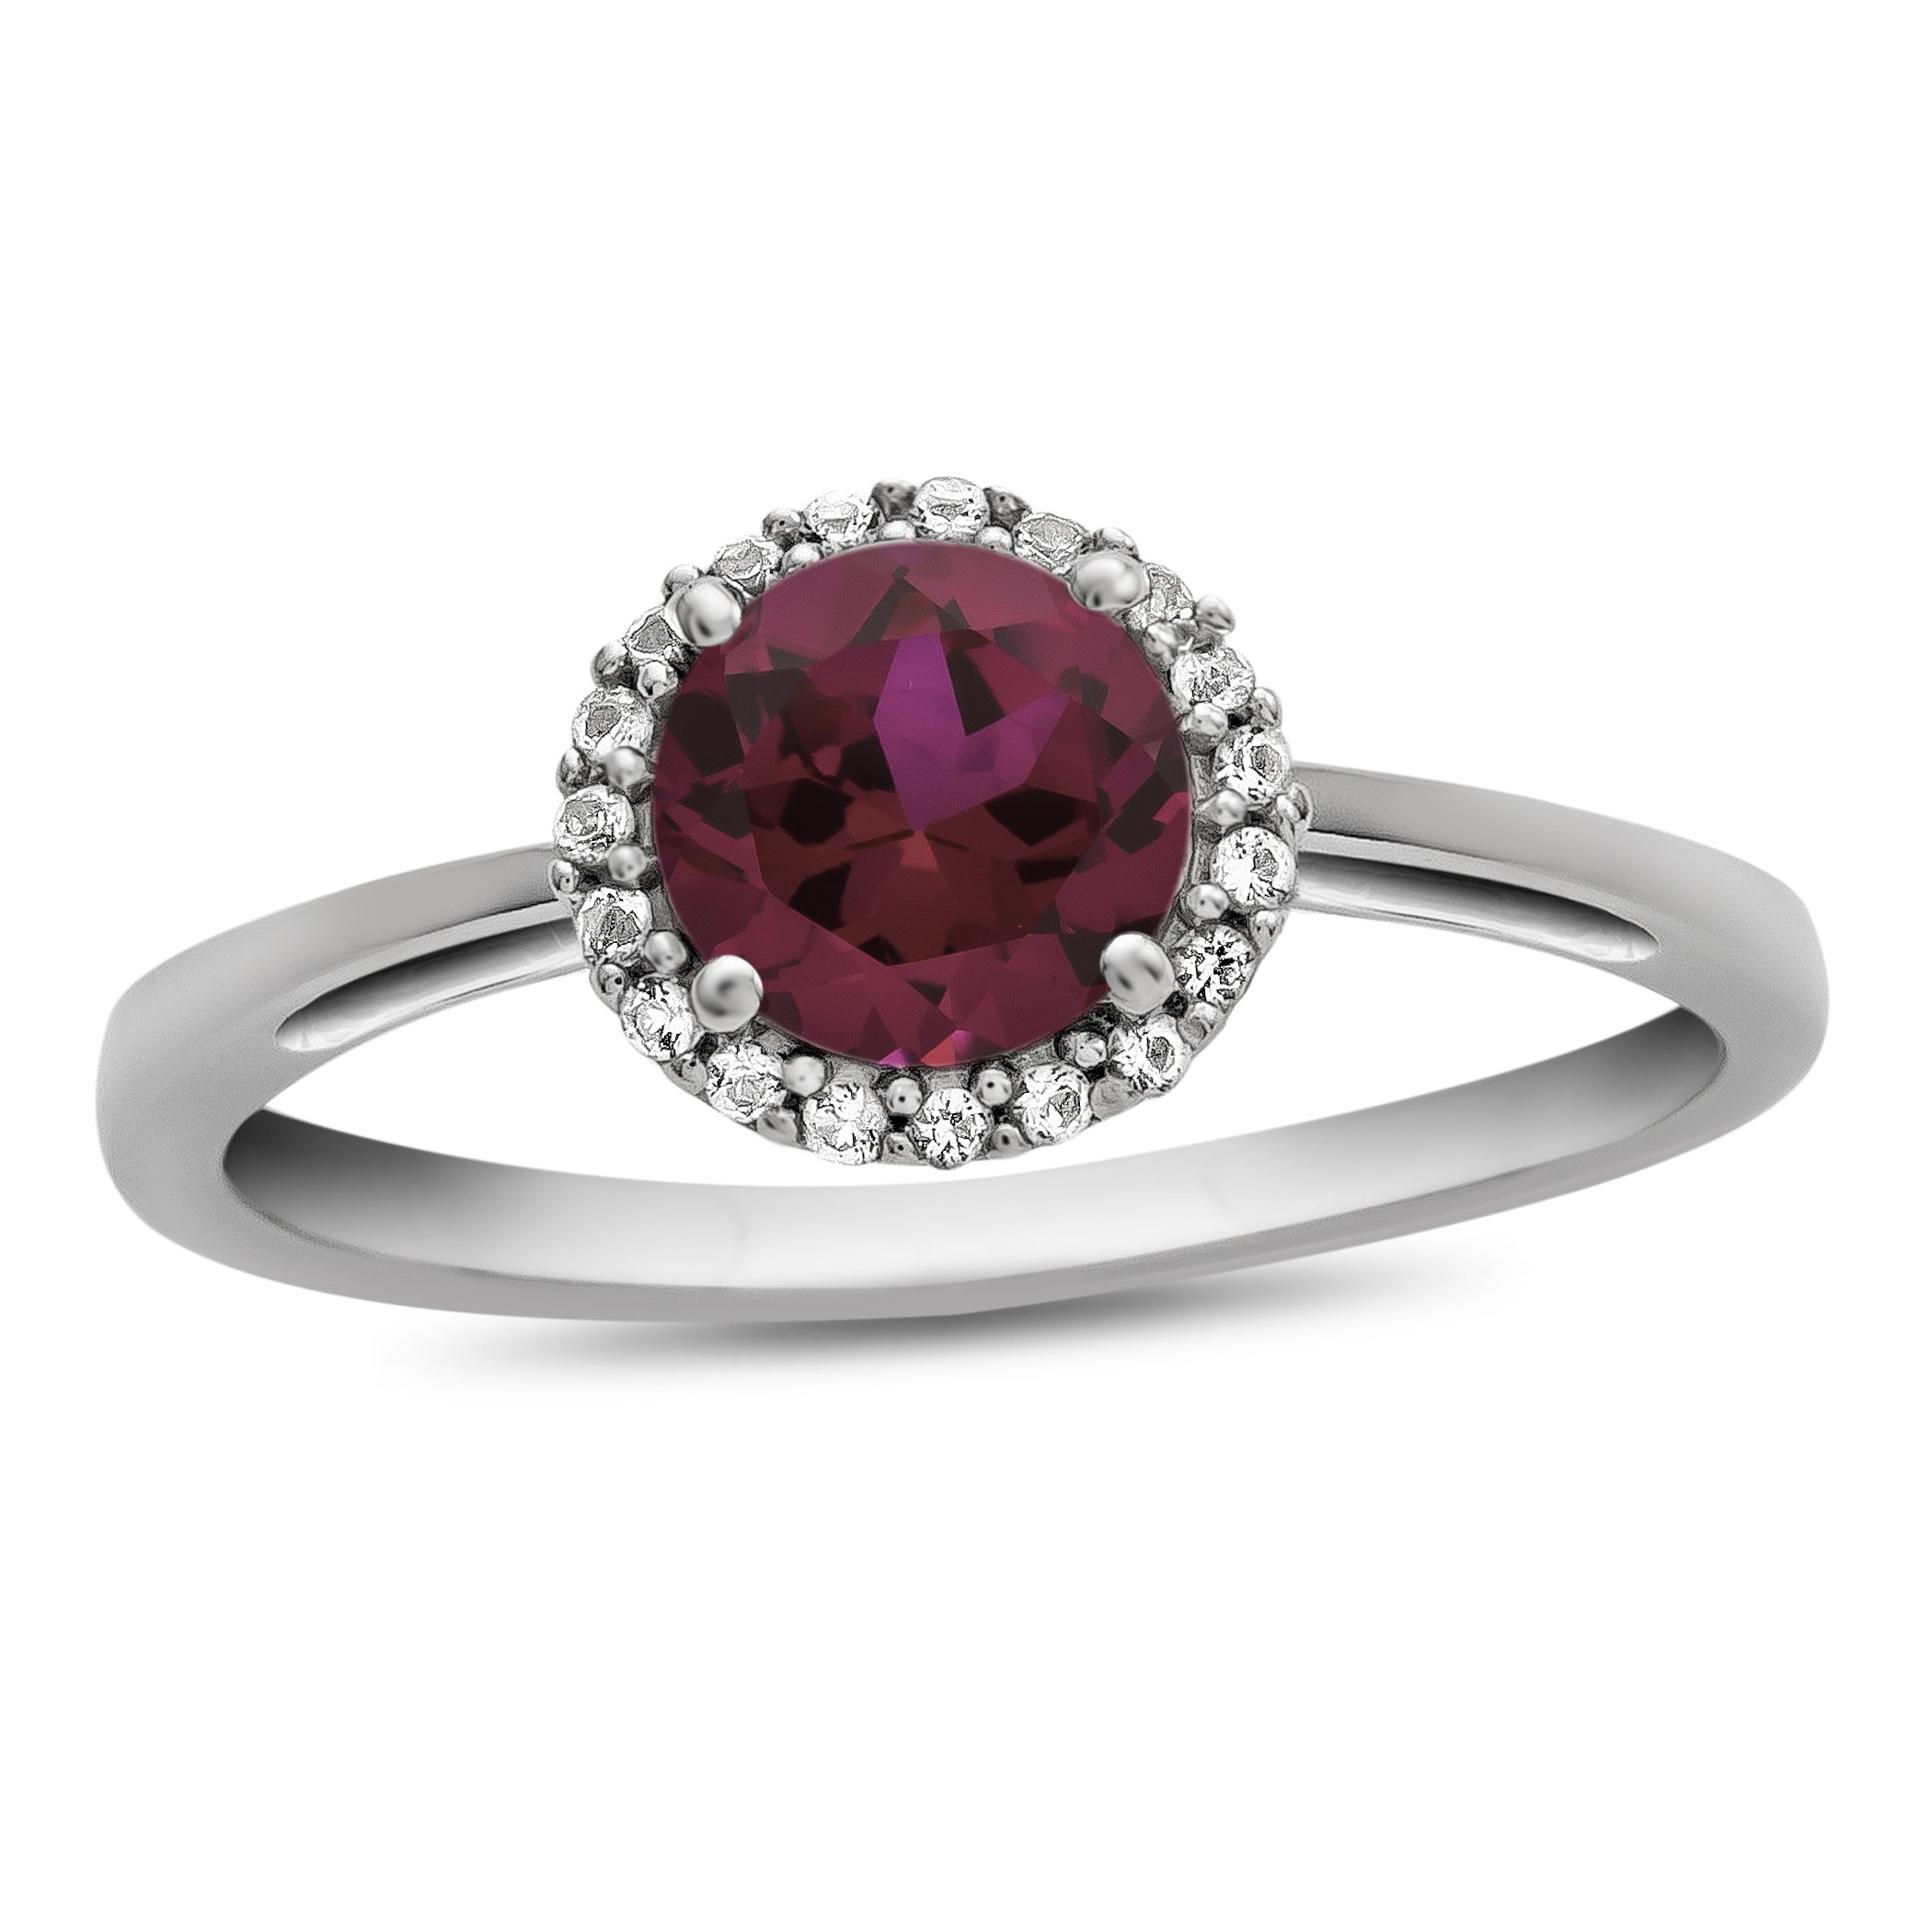 10k White Gold 6mm Round Created Ruby with White Topaz accent stones Halo Ring Size 6